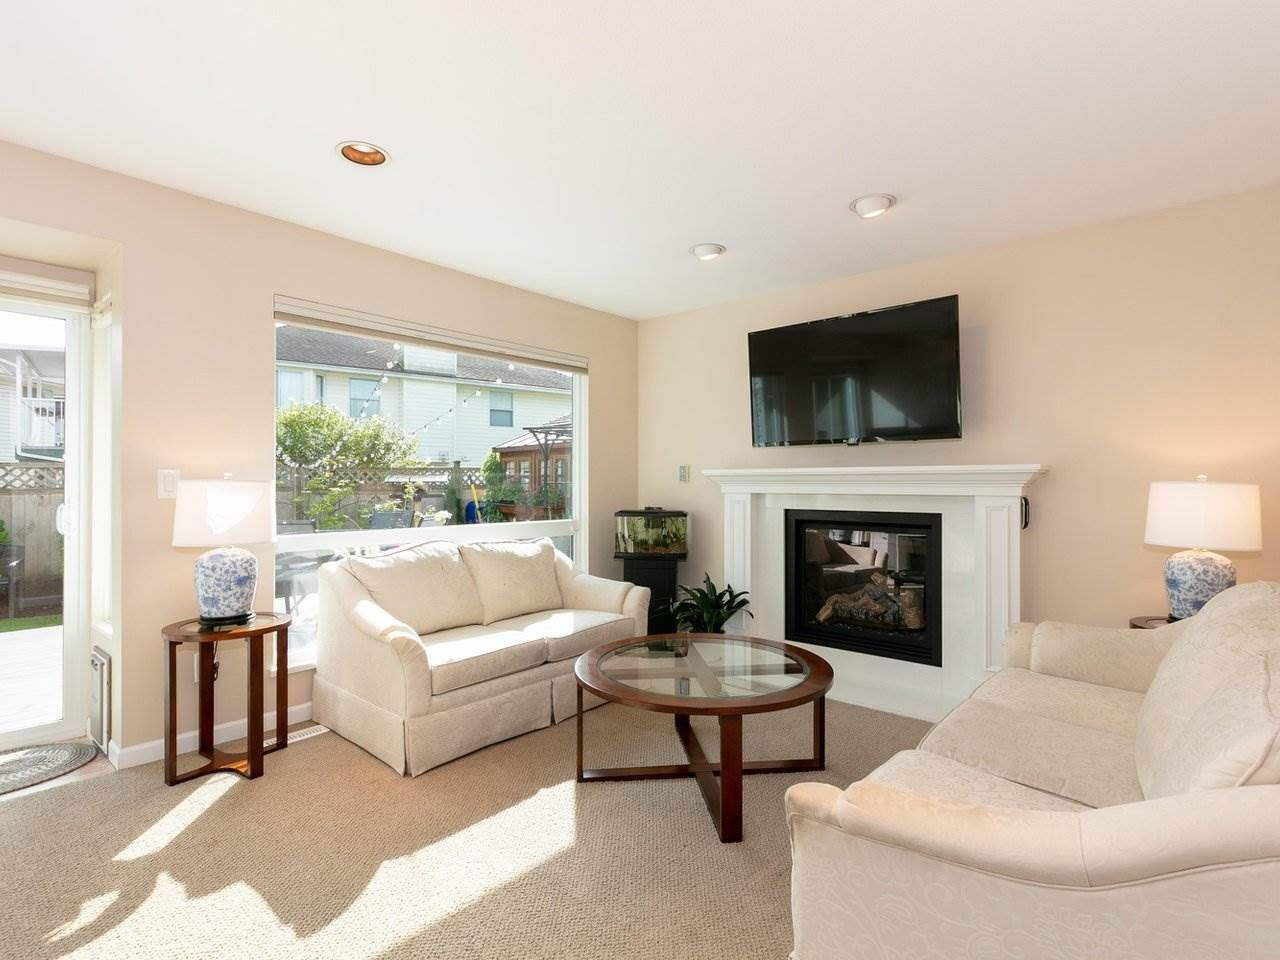 Photo 11: Photos: 19645 SOMERSET Drive in Pitt Meadows: Mid Meadows House for sale : MLS®# R2505880